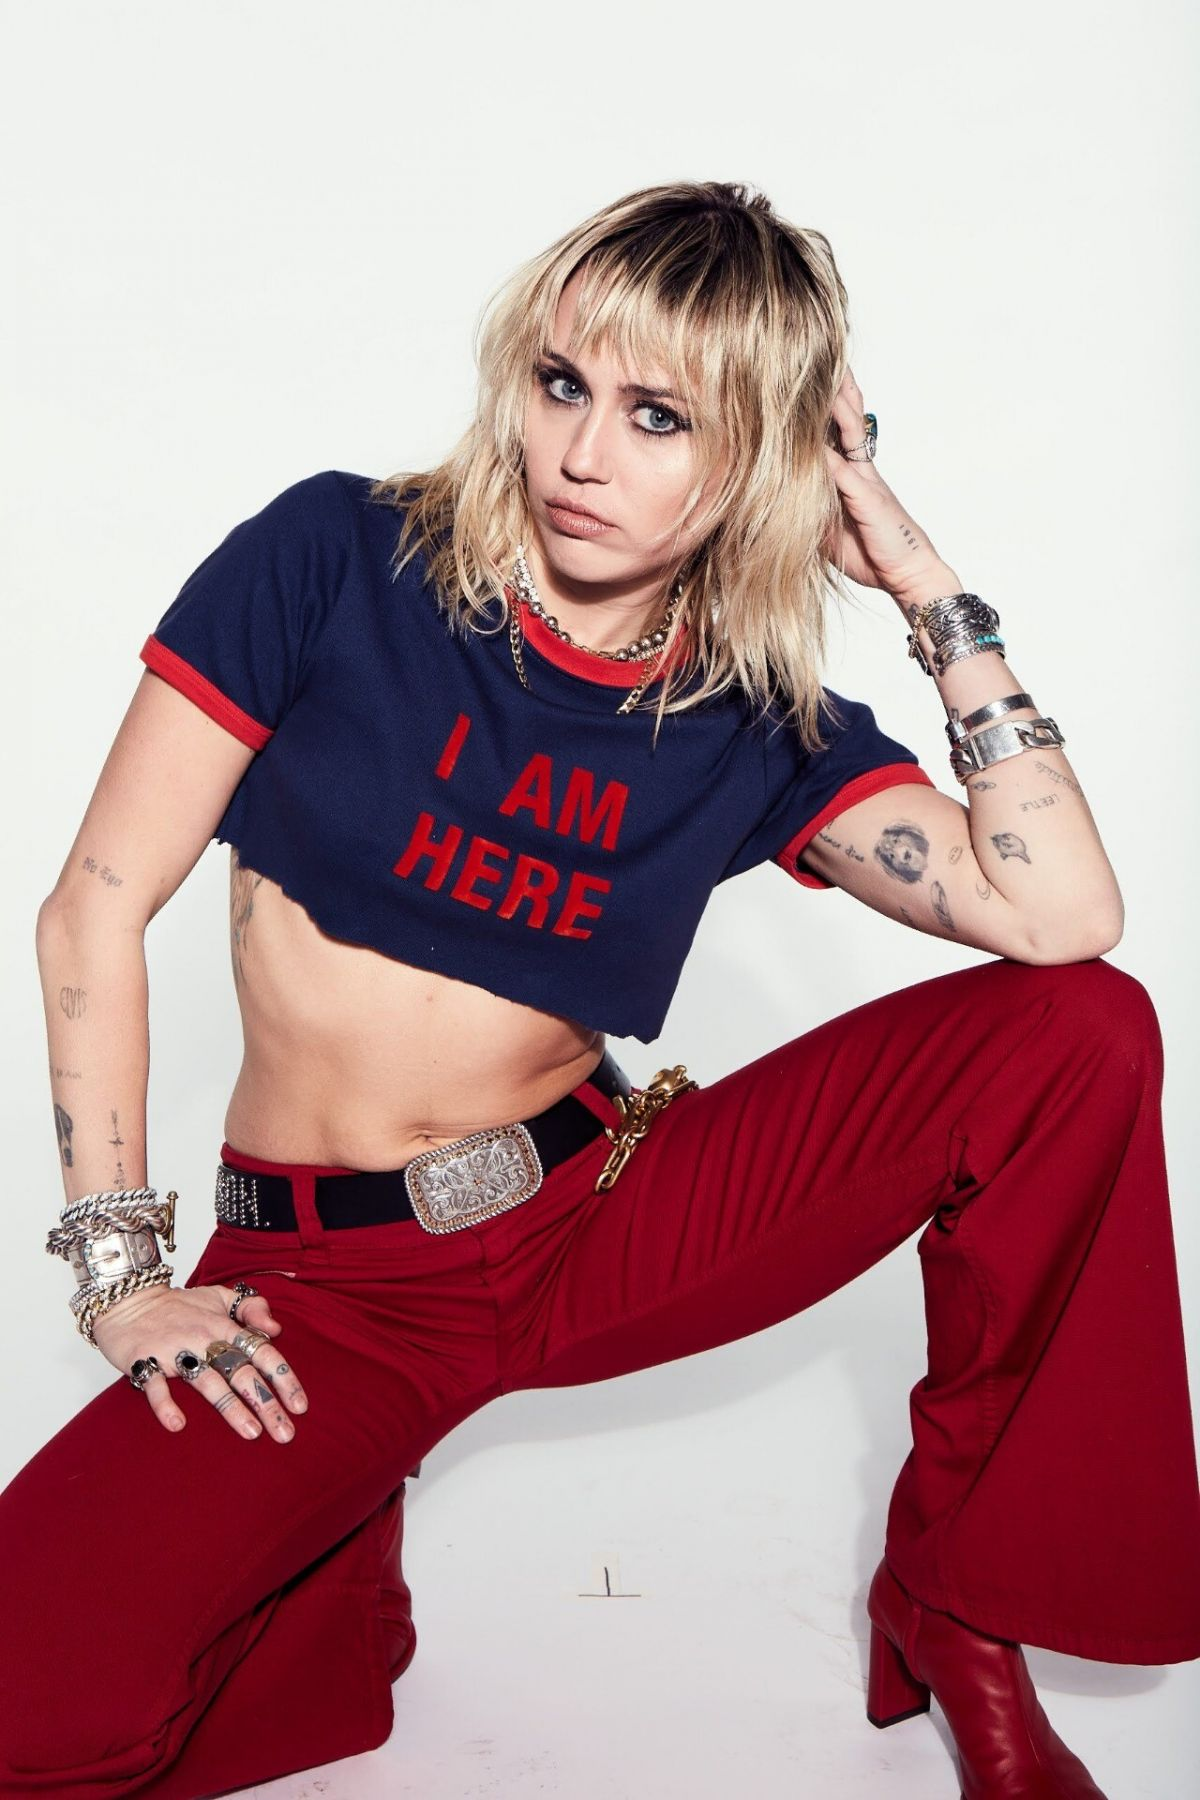 MILEY CYRUS - She Is Here Photoshoot, December 2020 ...